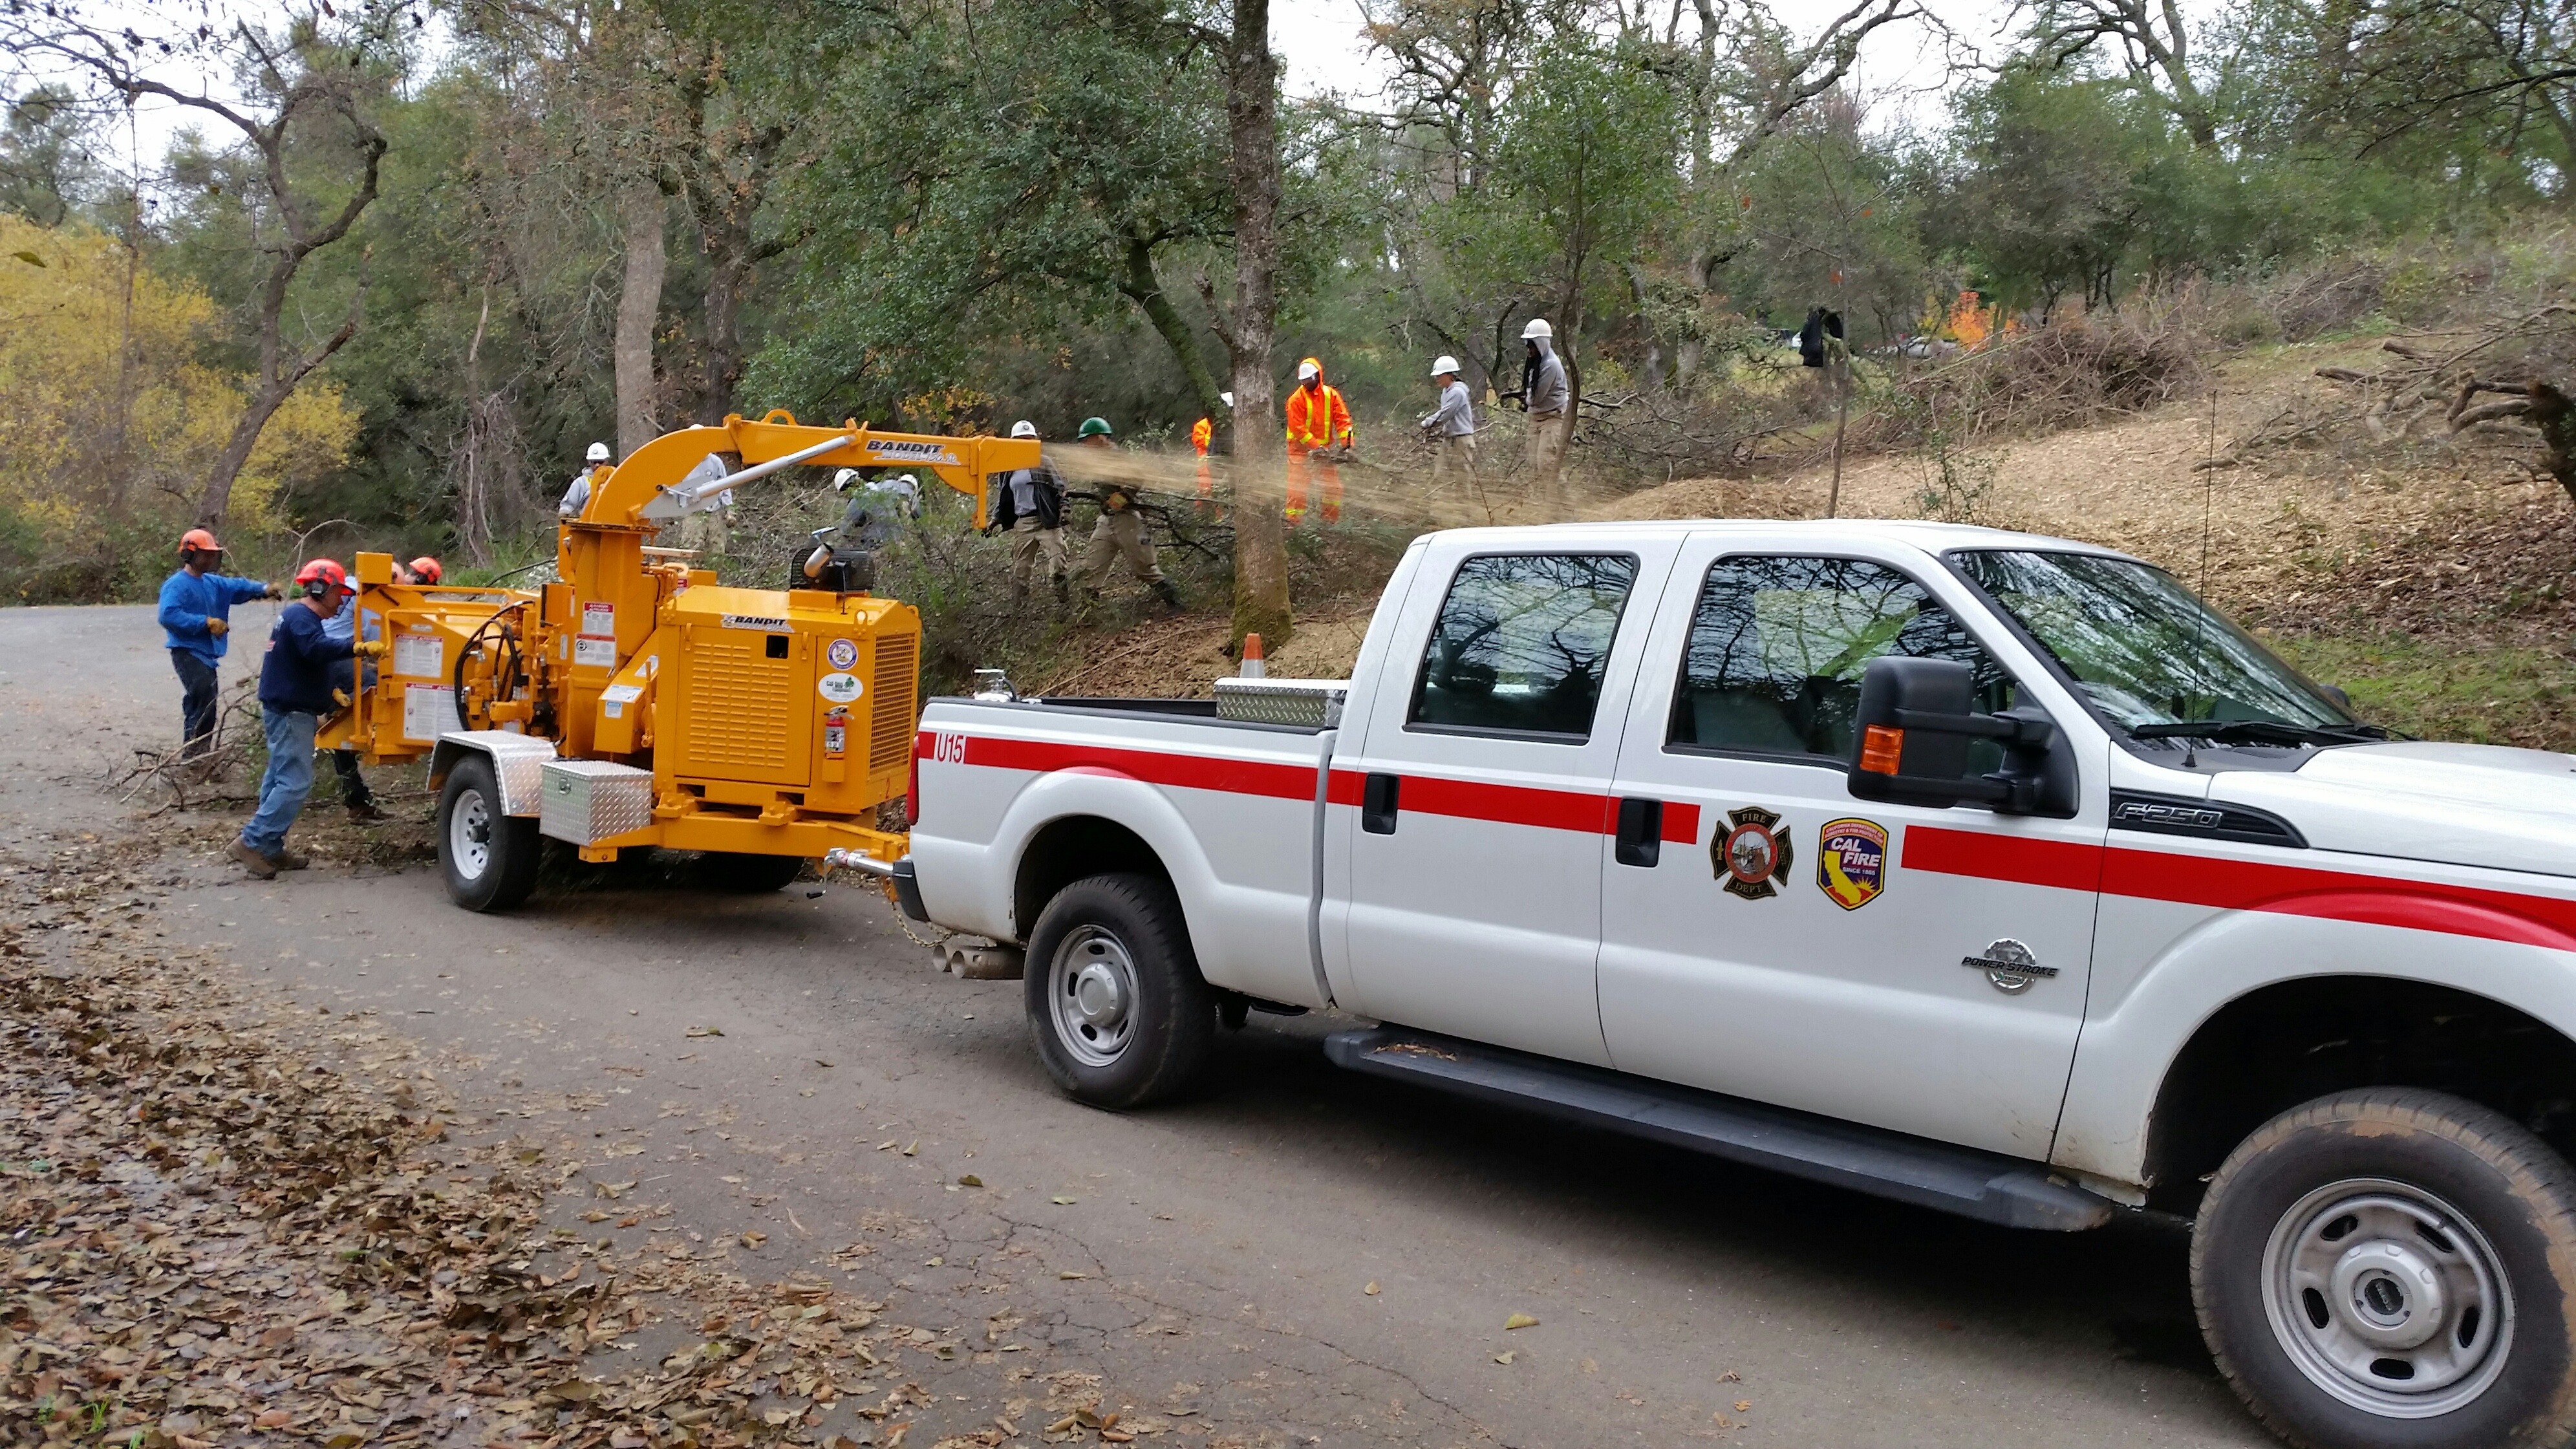 Placer County Fire Map.Placer Land Trust Placer County Chipper Program At Work